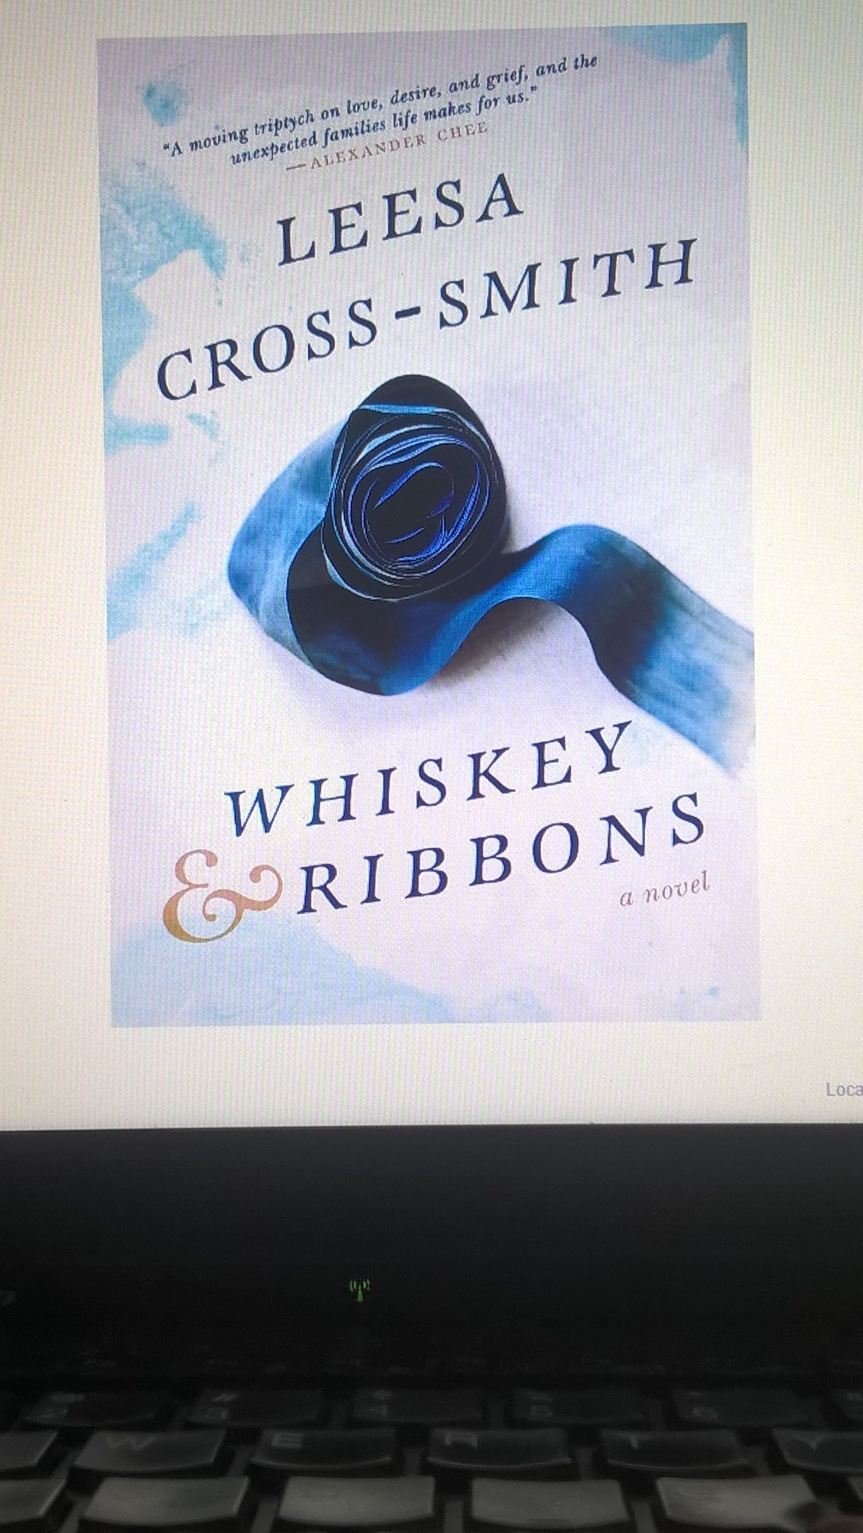 Whiskey and Ribbons by LeesaCross-Smith